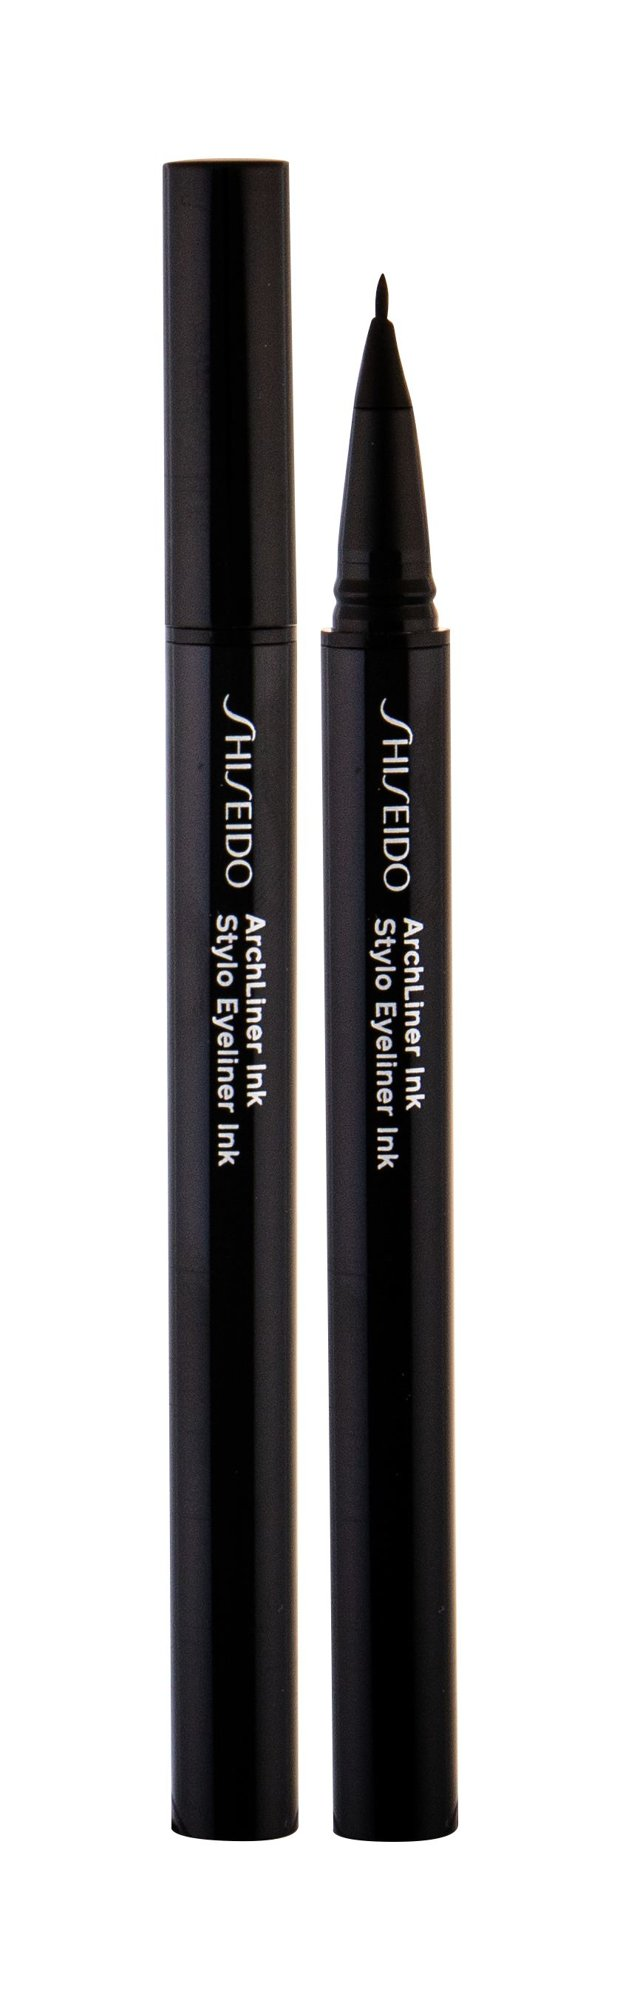 Shiseido ArchLiner Ink Eye Line 0,4ml 01 Shibui Black